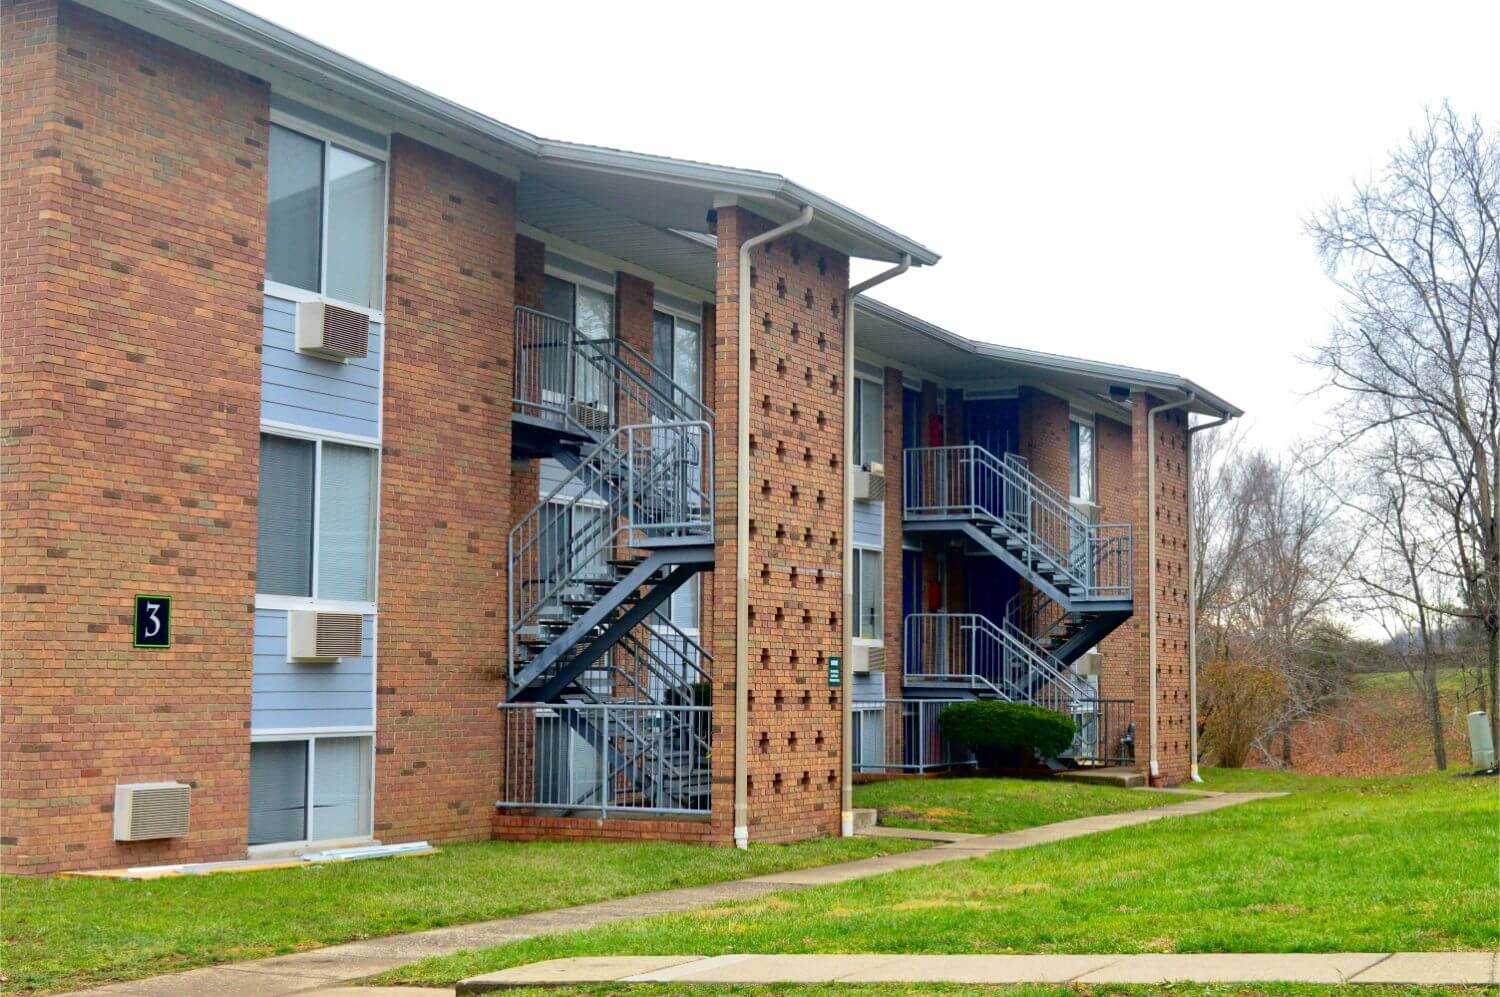 Contact Us Campus Heights Apartments In Athens Oh Craigslist free classified ad posting services allow you to post personal ads, jobs and real estate. contact us campus heights apartments